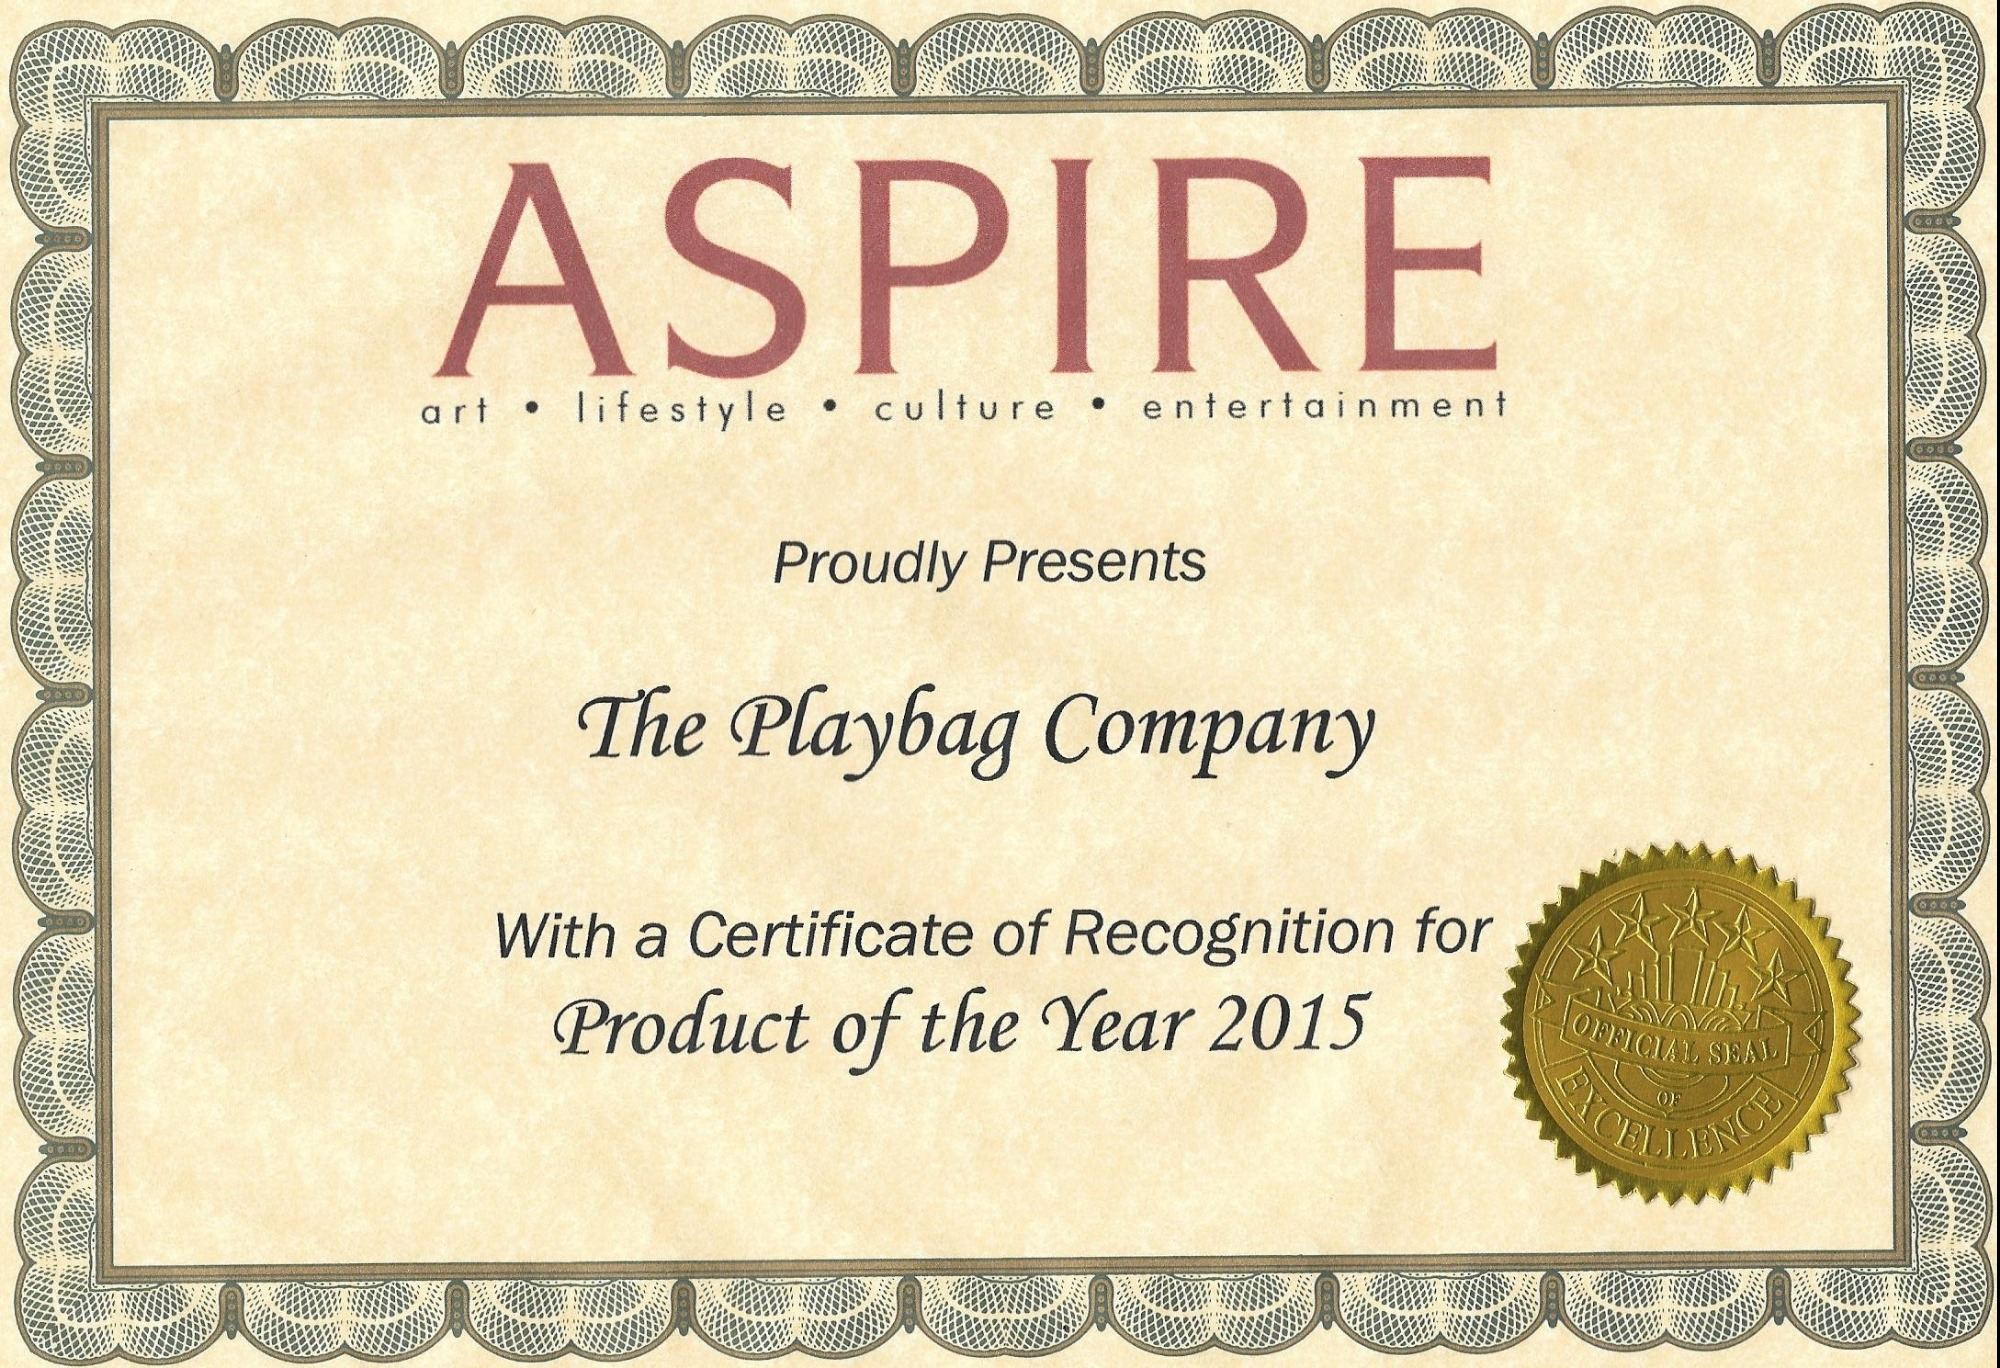 PlayBag awarded Product of the Year 2015 by Aspire Magazine